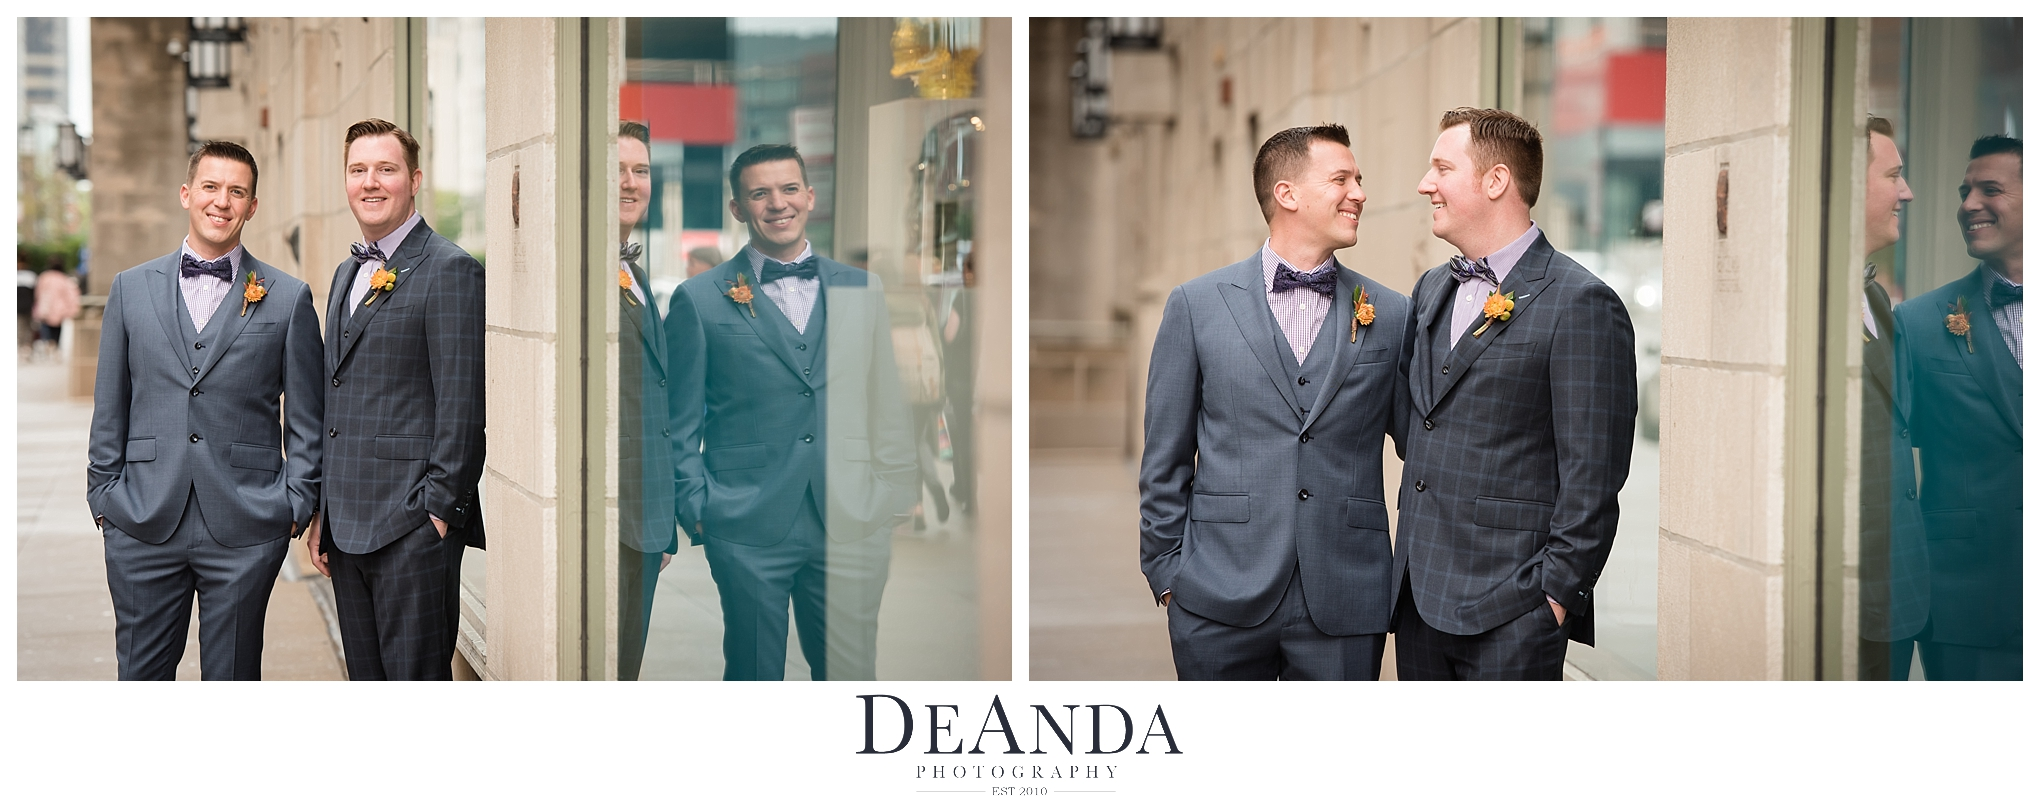 Grooms portraits in Chicago same sex wedding